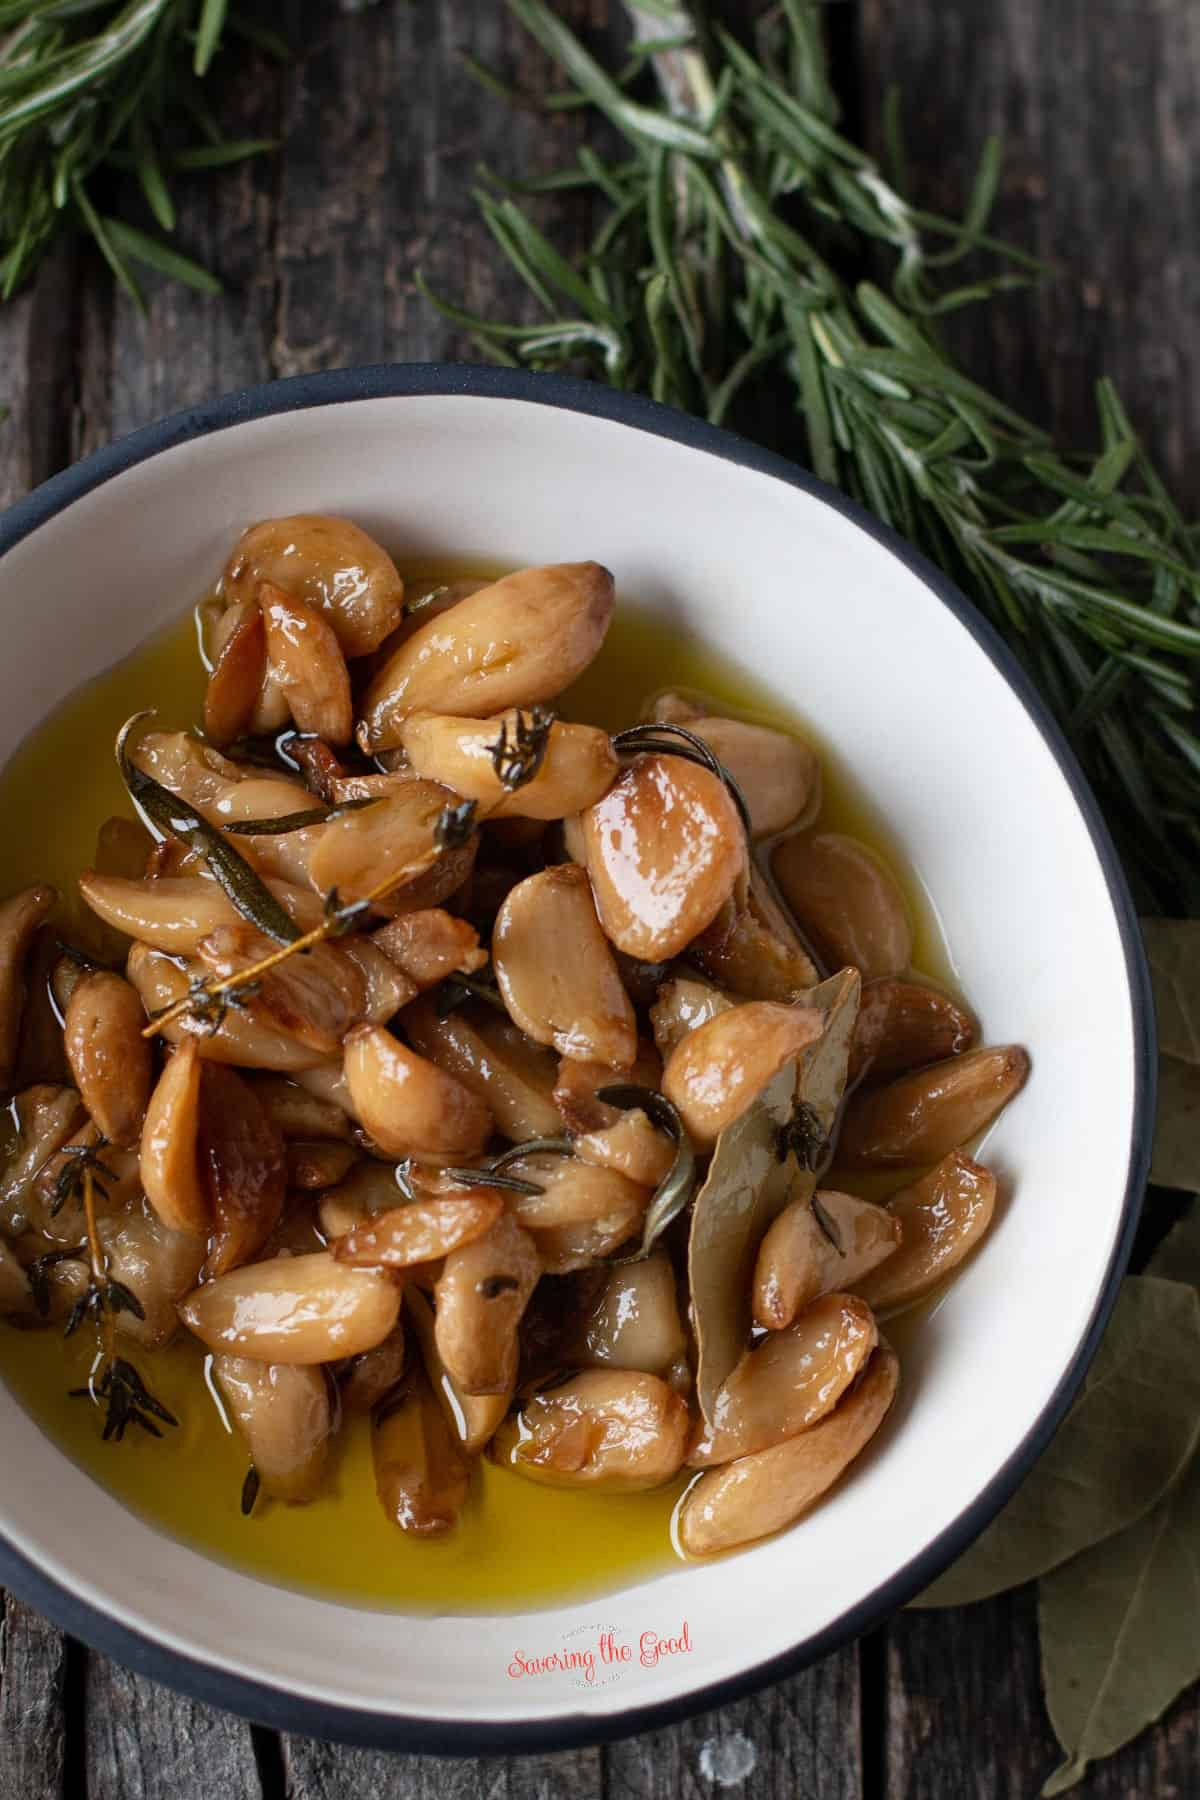 beautifully colored garlic confit in a white bowl with rosemary as garnish, vertical image